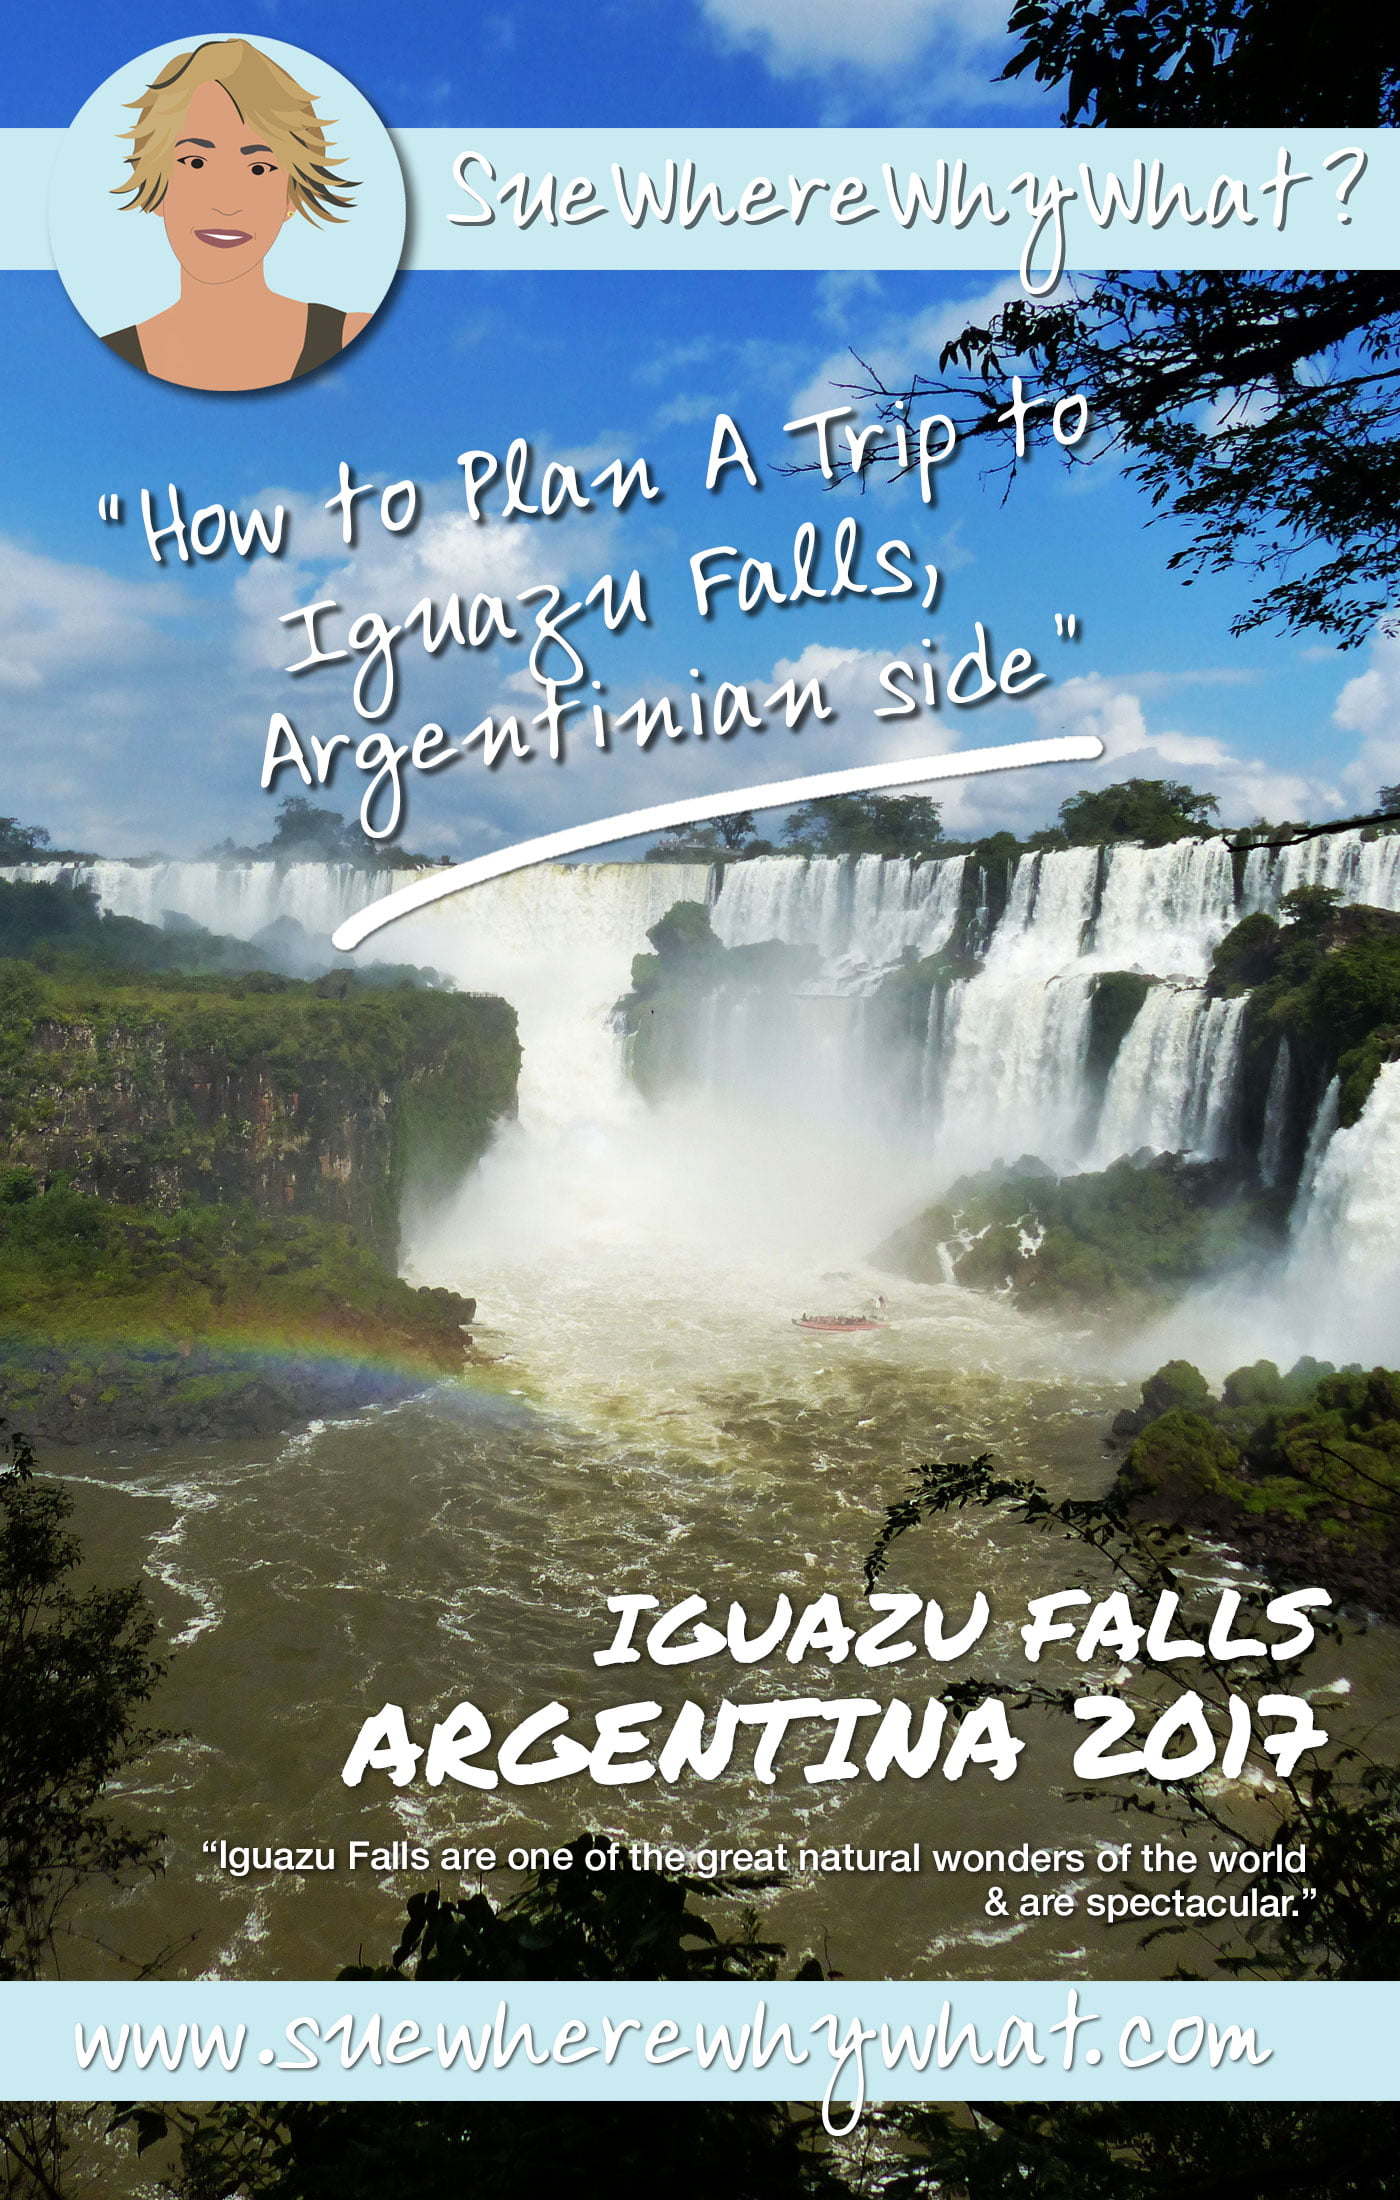 Argentina or Brazil…or both? How to plan a trip to Iguazu Falls. Includes time to go, transport, costs, wildlife, what to wear & top tips on how to plan a day. https://www.suewherewhywhat.com/activities/day-trips/how-to-plan-a-trip-to-iguazu-falls-argentinian-side